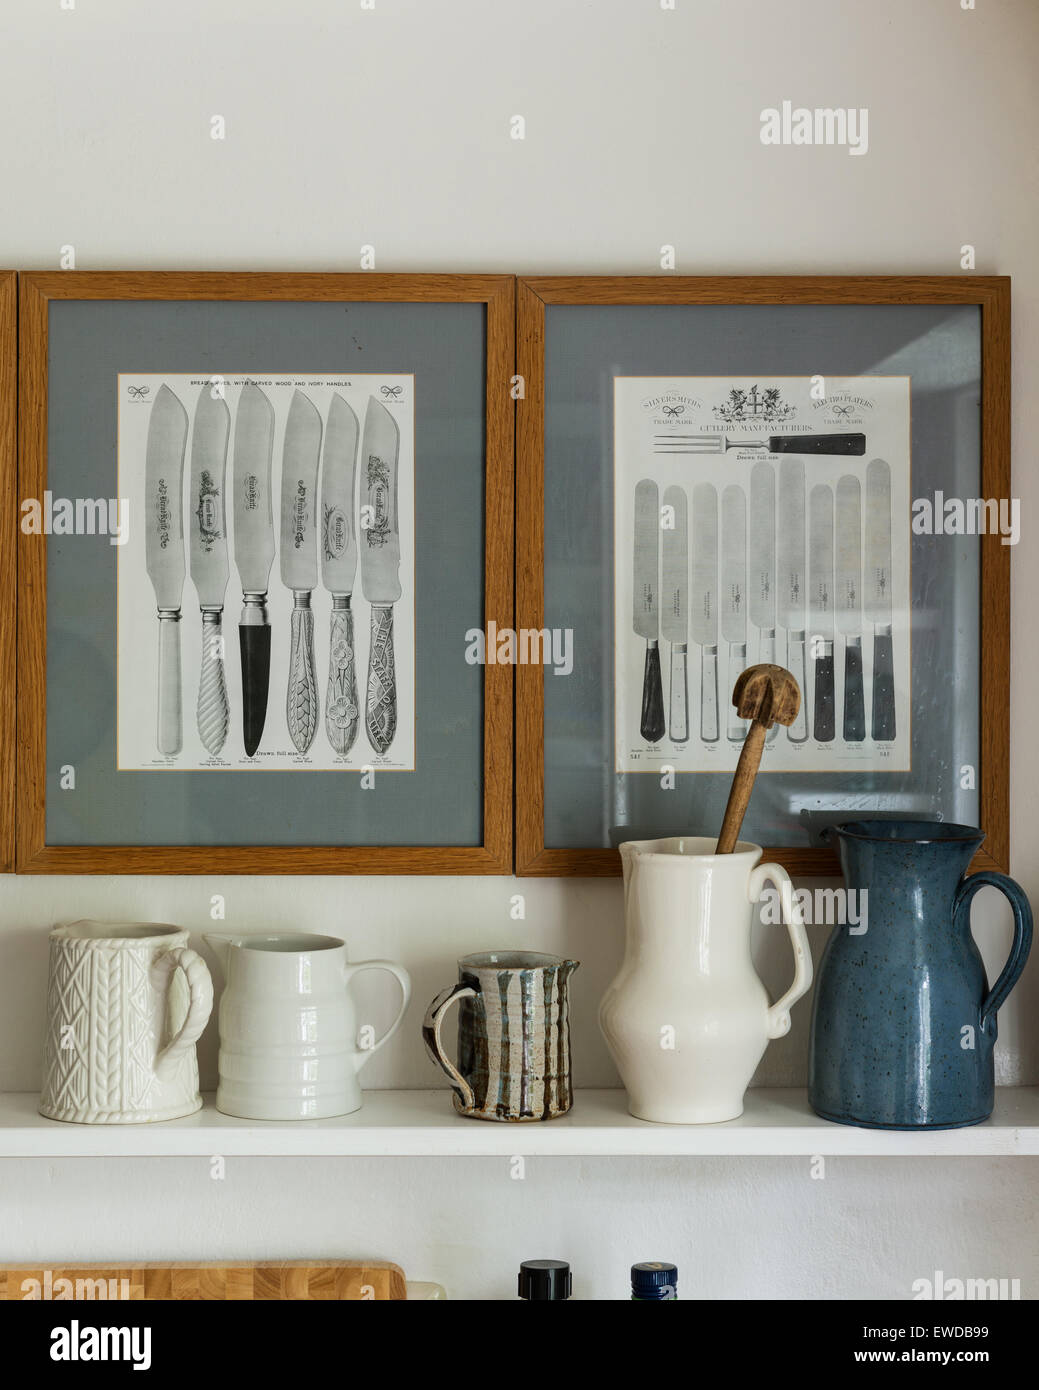 Assorted ceramic jugs on shelf underneath old fashioned framed prints of knives - Stock Image